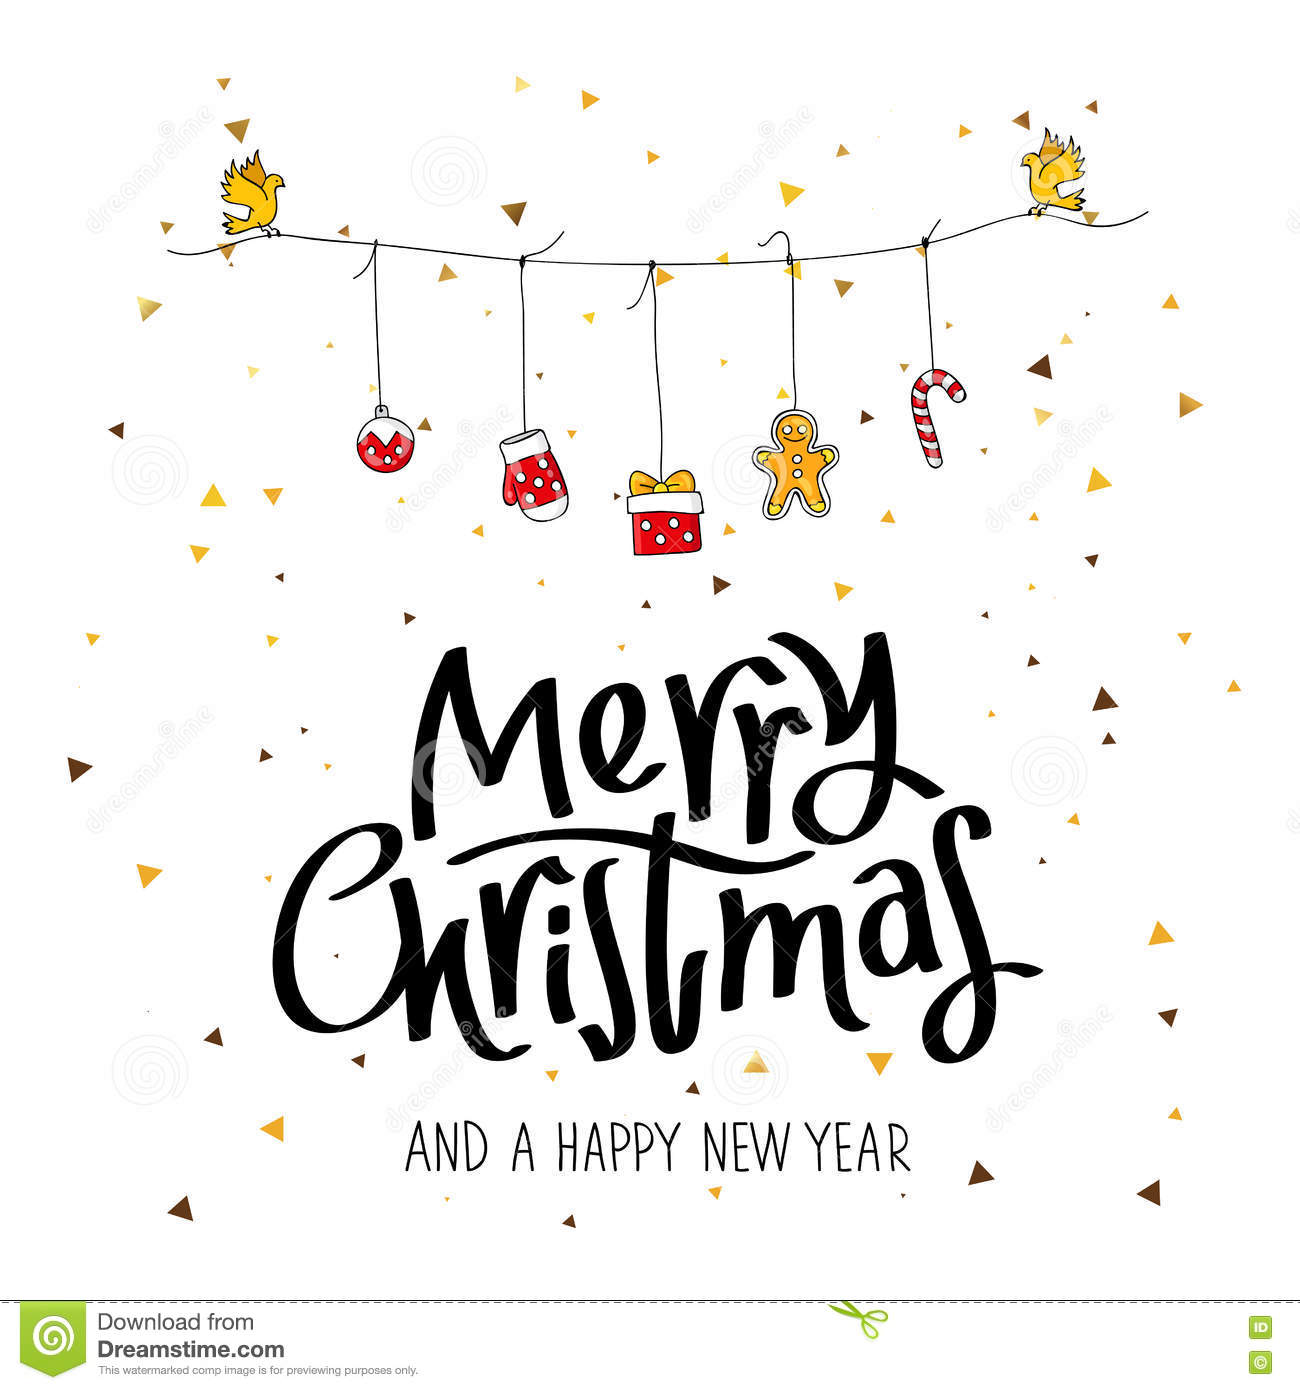 Merry Christmas And A Happy New Year Stock Vector - Illustration of